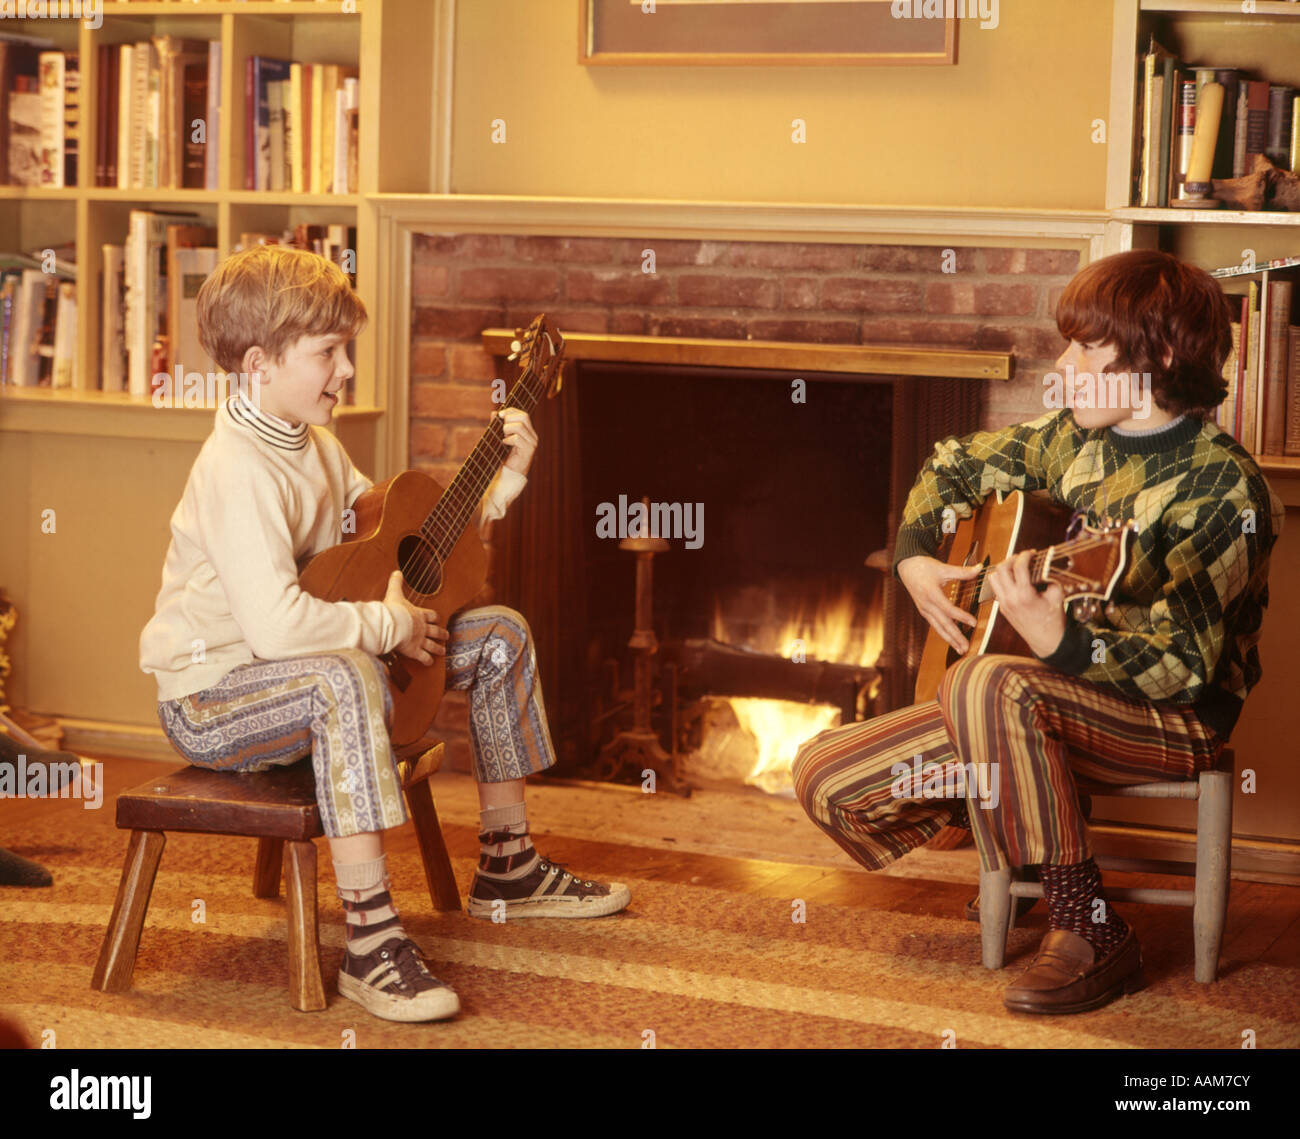 1970 1970s 2 BOYS FRONT FIREPLACE PLAY PLAYING STRUMMING GUITARS ...